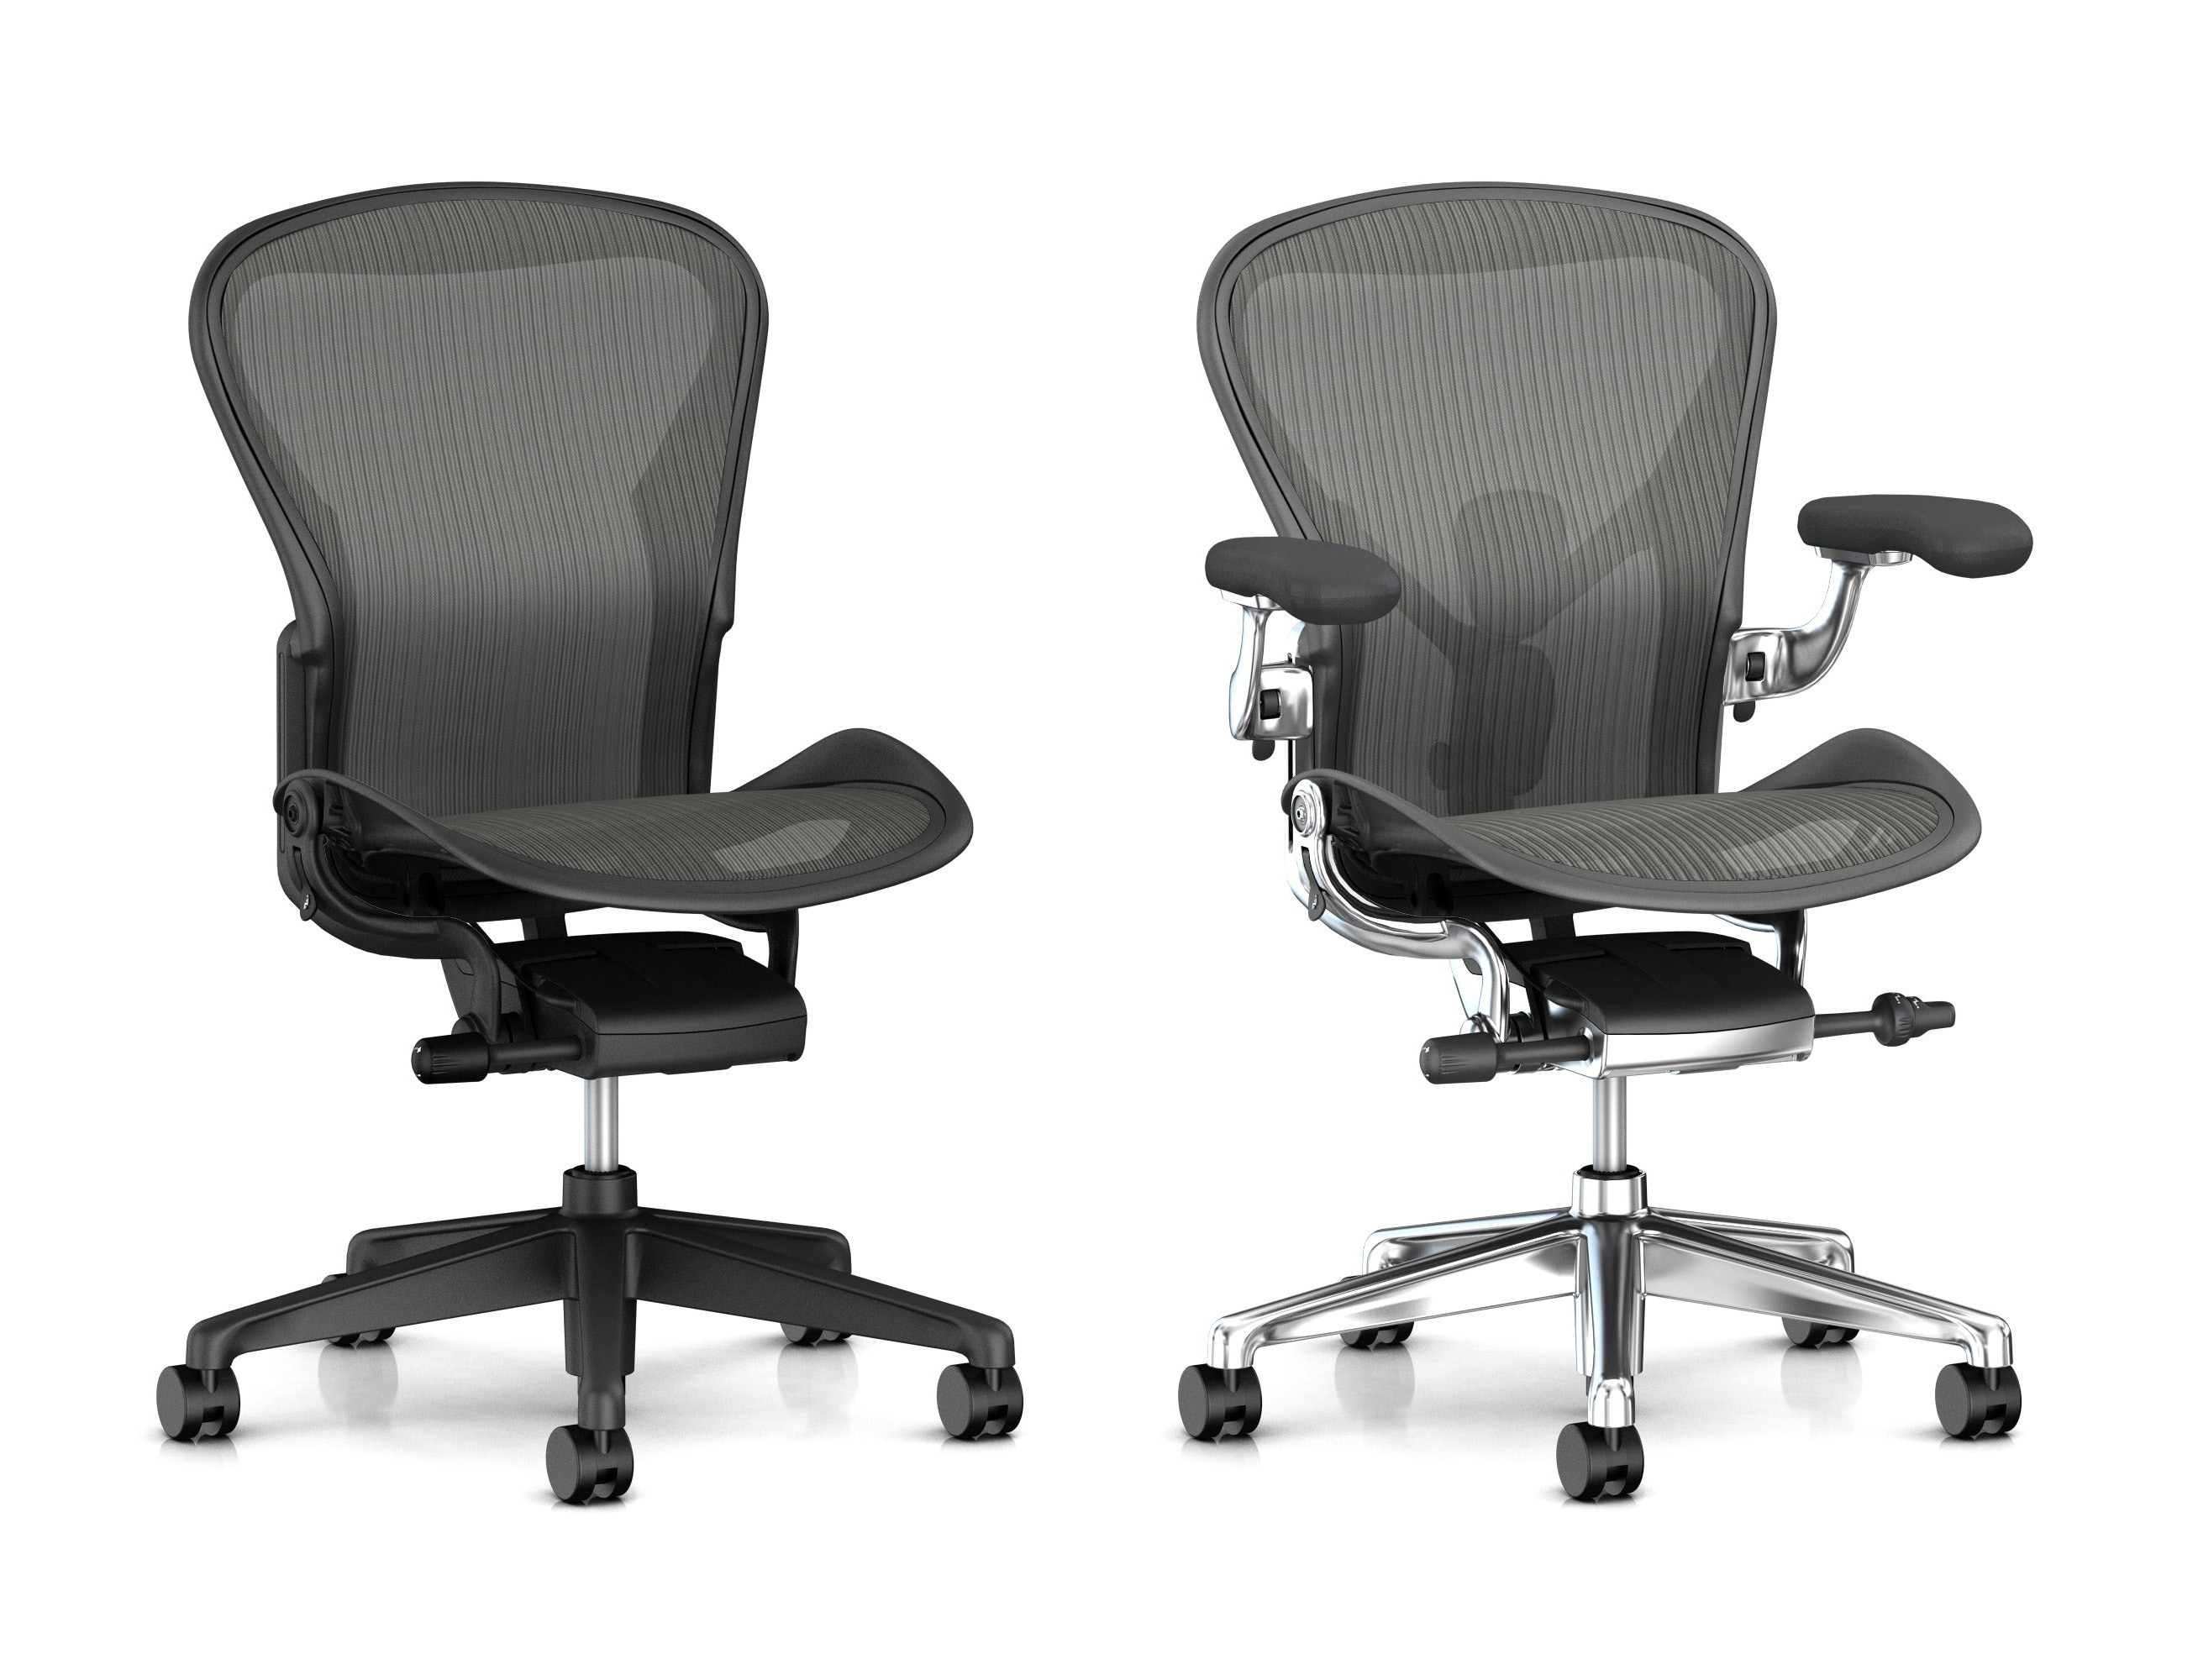 Herman miller chair - Herman Miller Aeron Chair 2016 Build Your Own